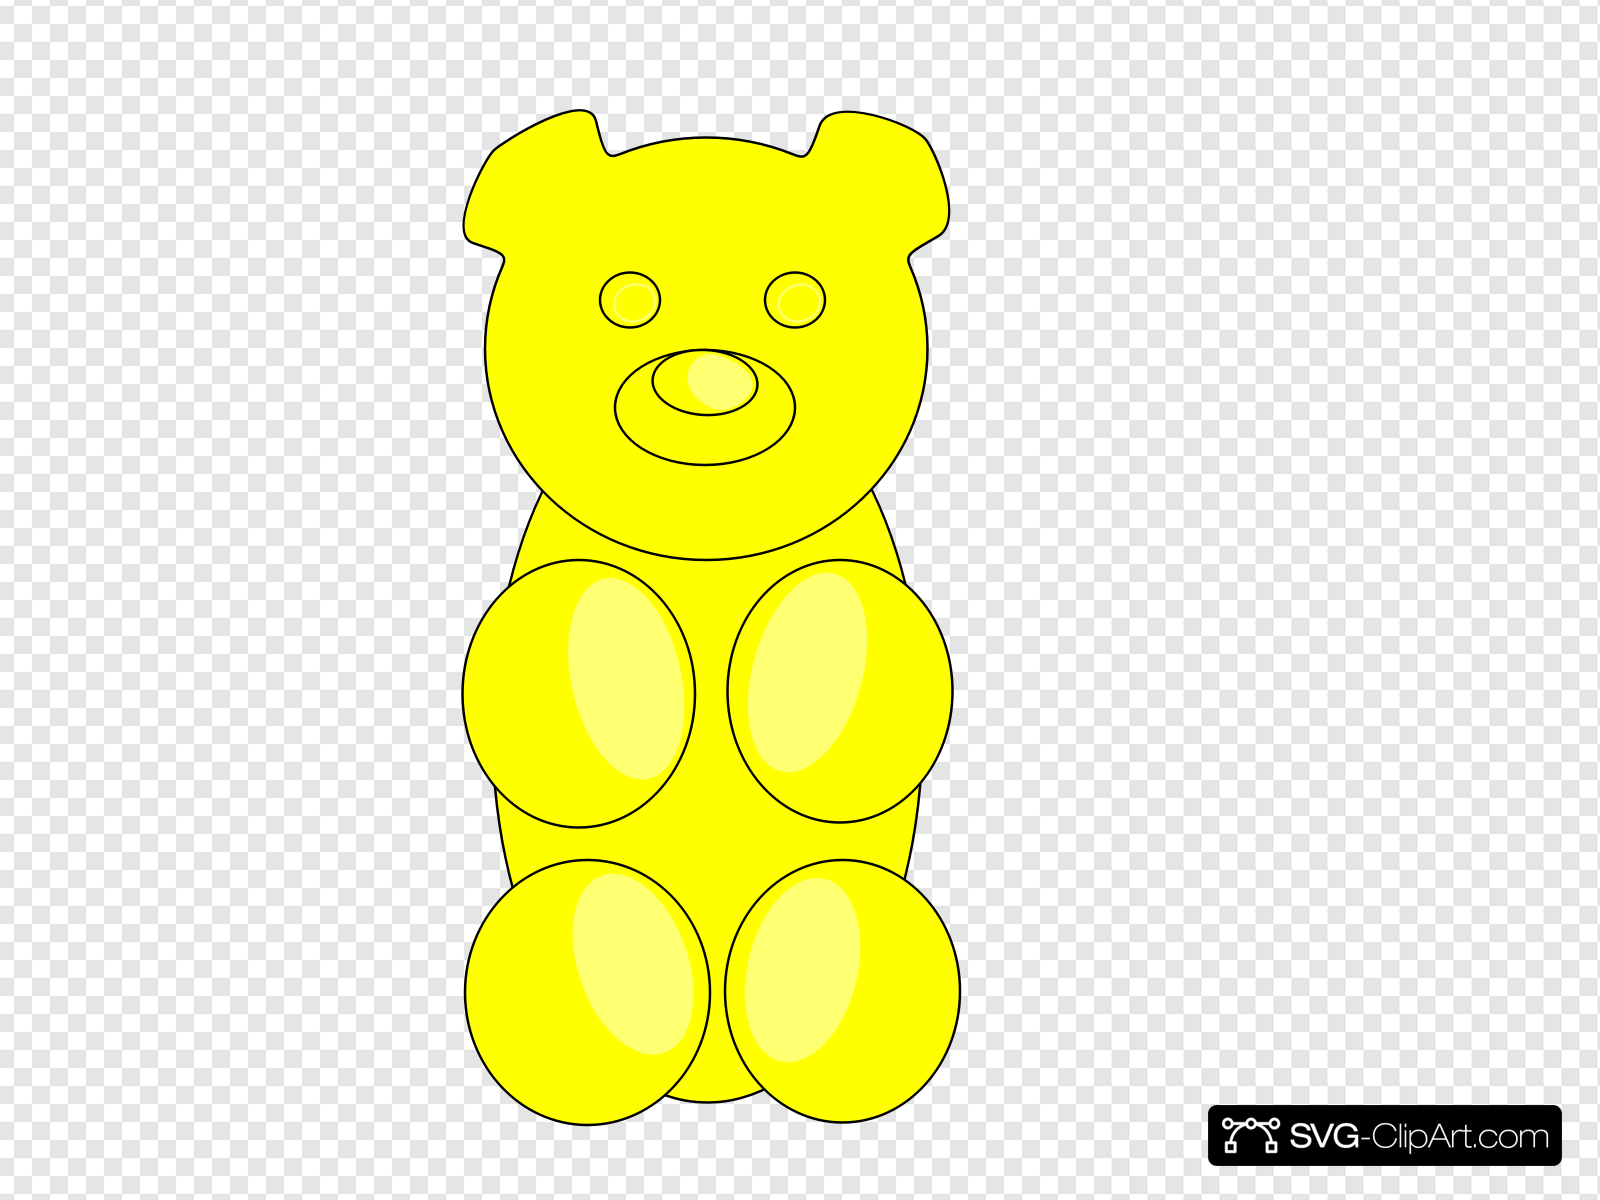 Gummy Bear Outline Clip art, Icon and SVG.